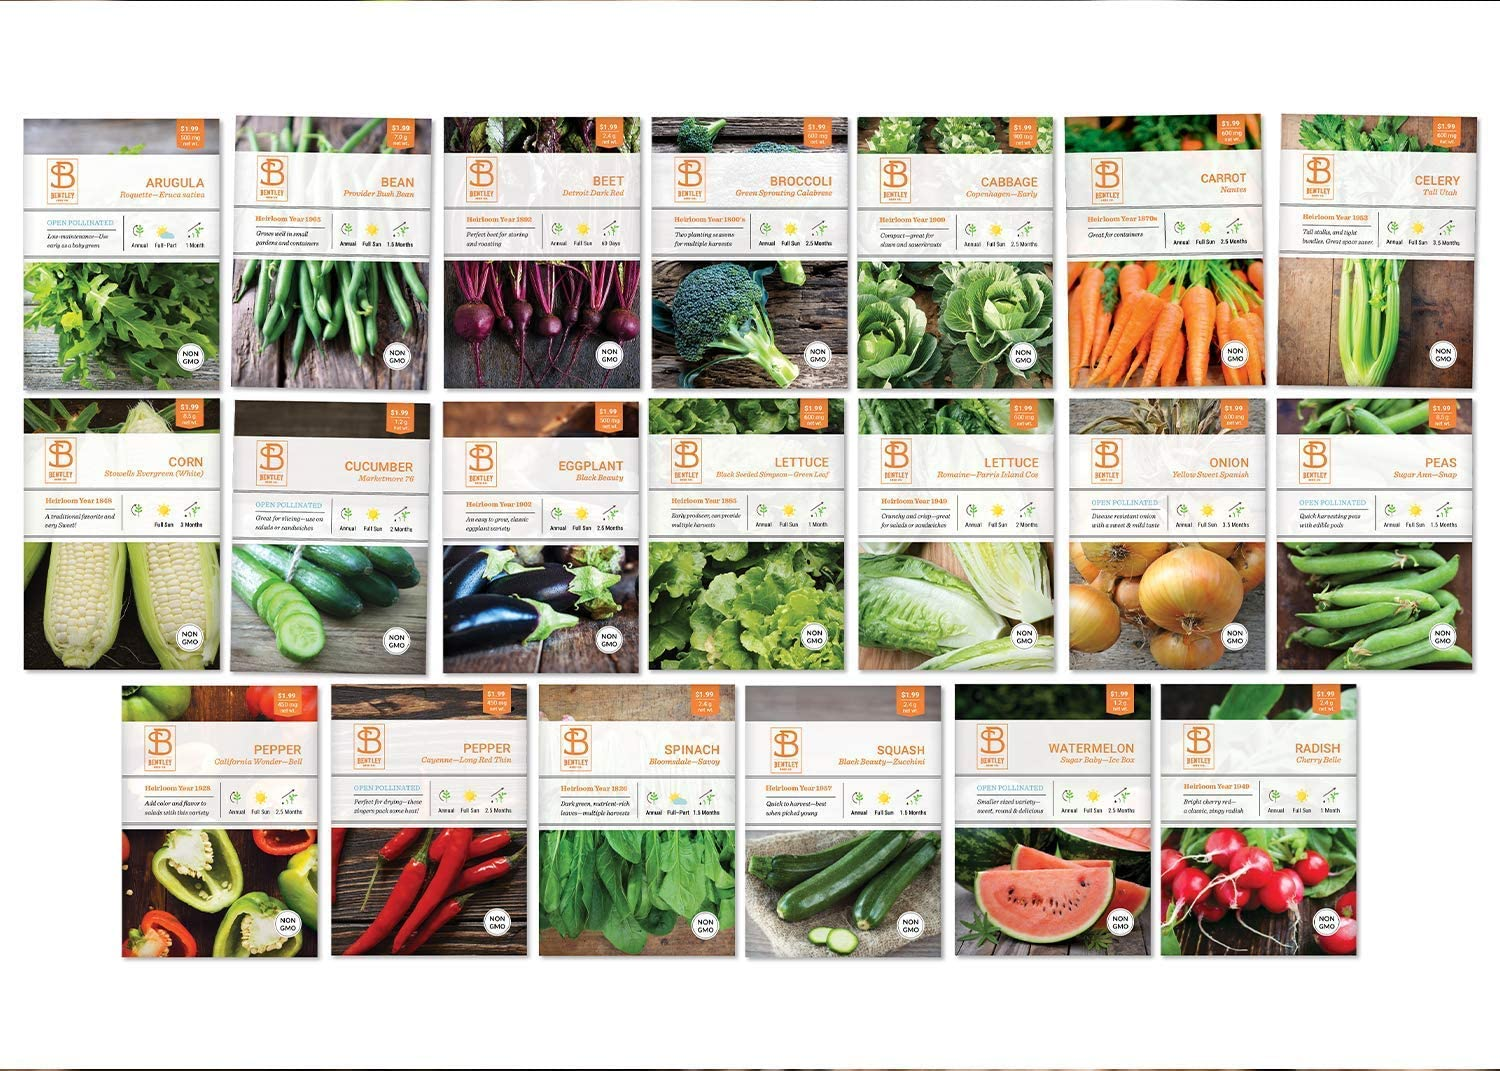 Bentley Seed Co. Set of 20 Vegetable Seeds for Planting - Gardening Seeds to Grow in a Garden or Indoors - Get your own Seeds for Planting Vegetables with Non GMO - Garden Seeds Vegetable Variety Pack